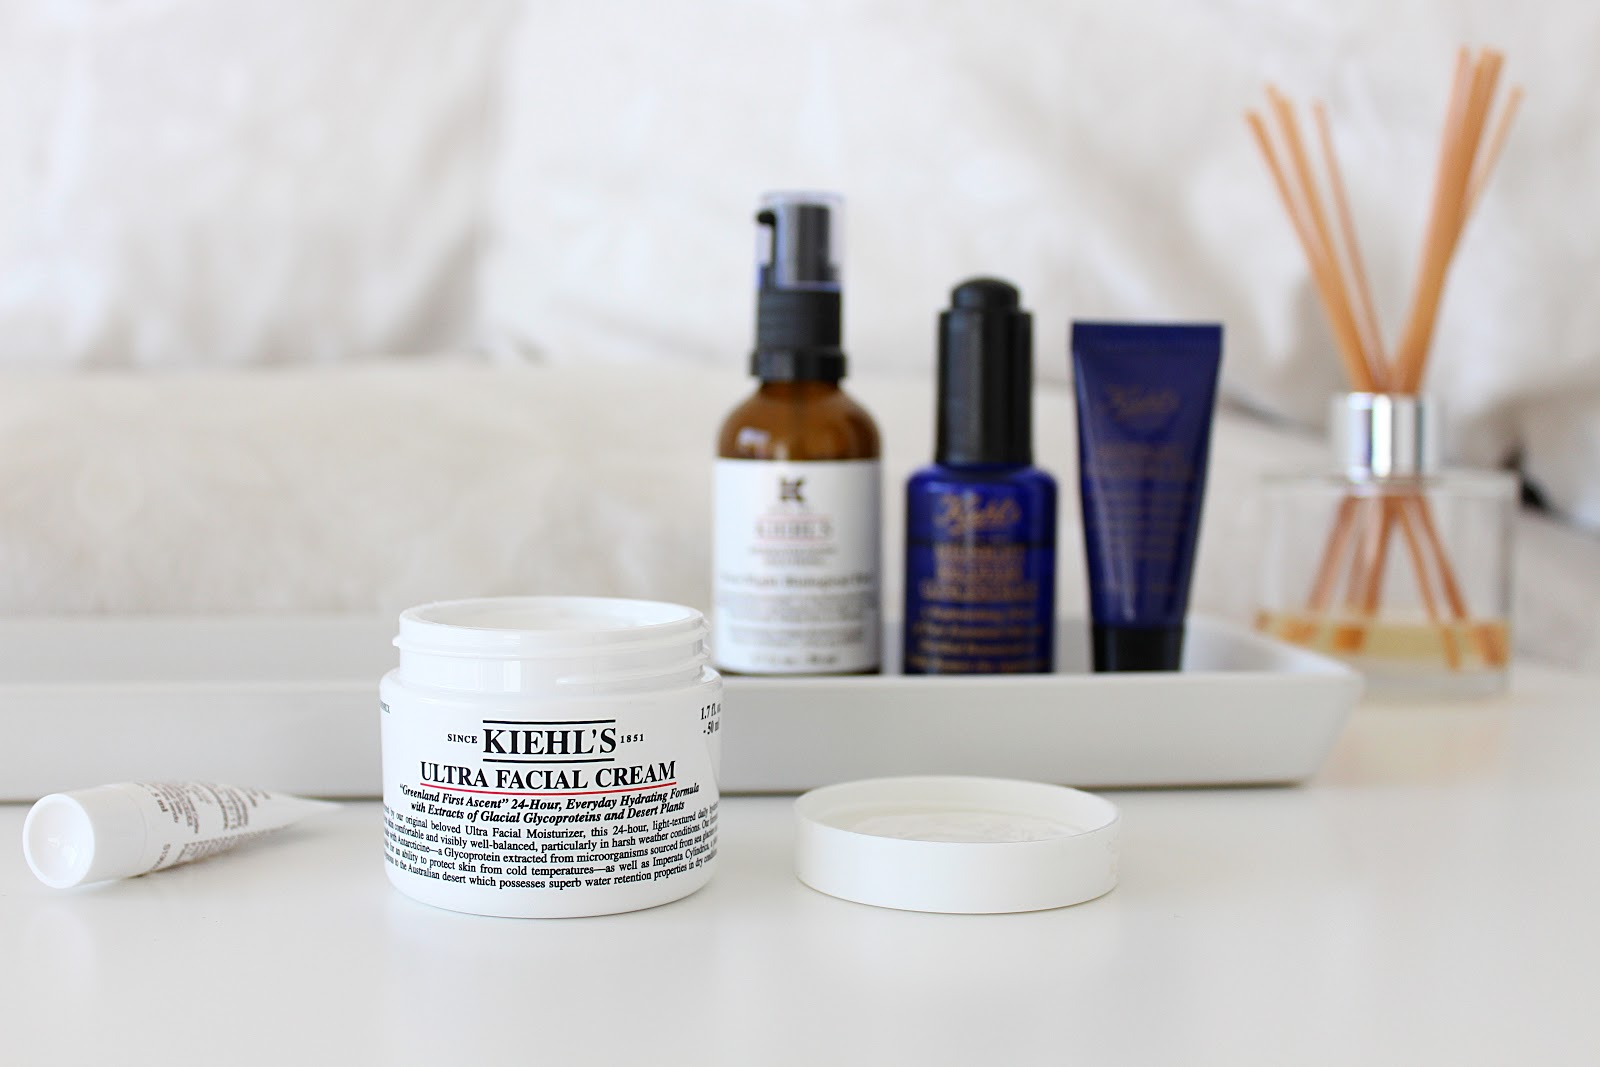 Kiehl's Skincare Review / Life in Excess Blog